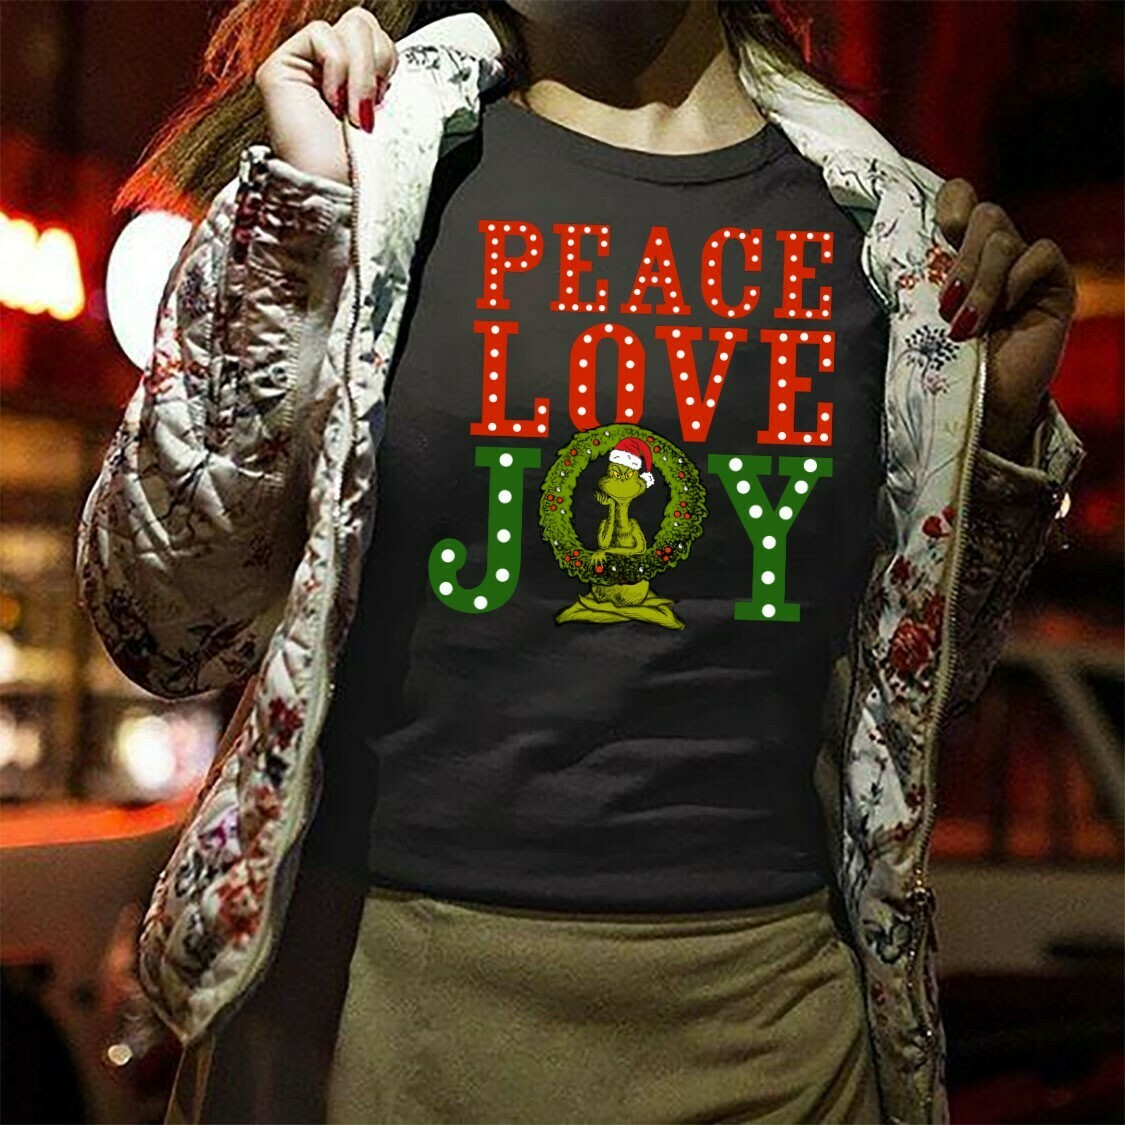 Peace Joy & Love Grinch Christmas,Christian Religious Faith Jesus,HYGGE - Rustic Love Peace Joy Sack Burlap Tê T-Shirts Long Sleeve Sweatshirt Hoodie Jolly Family Gifts